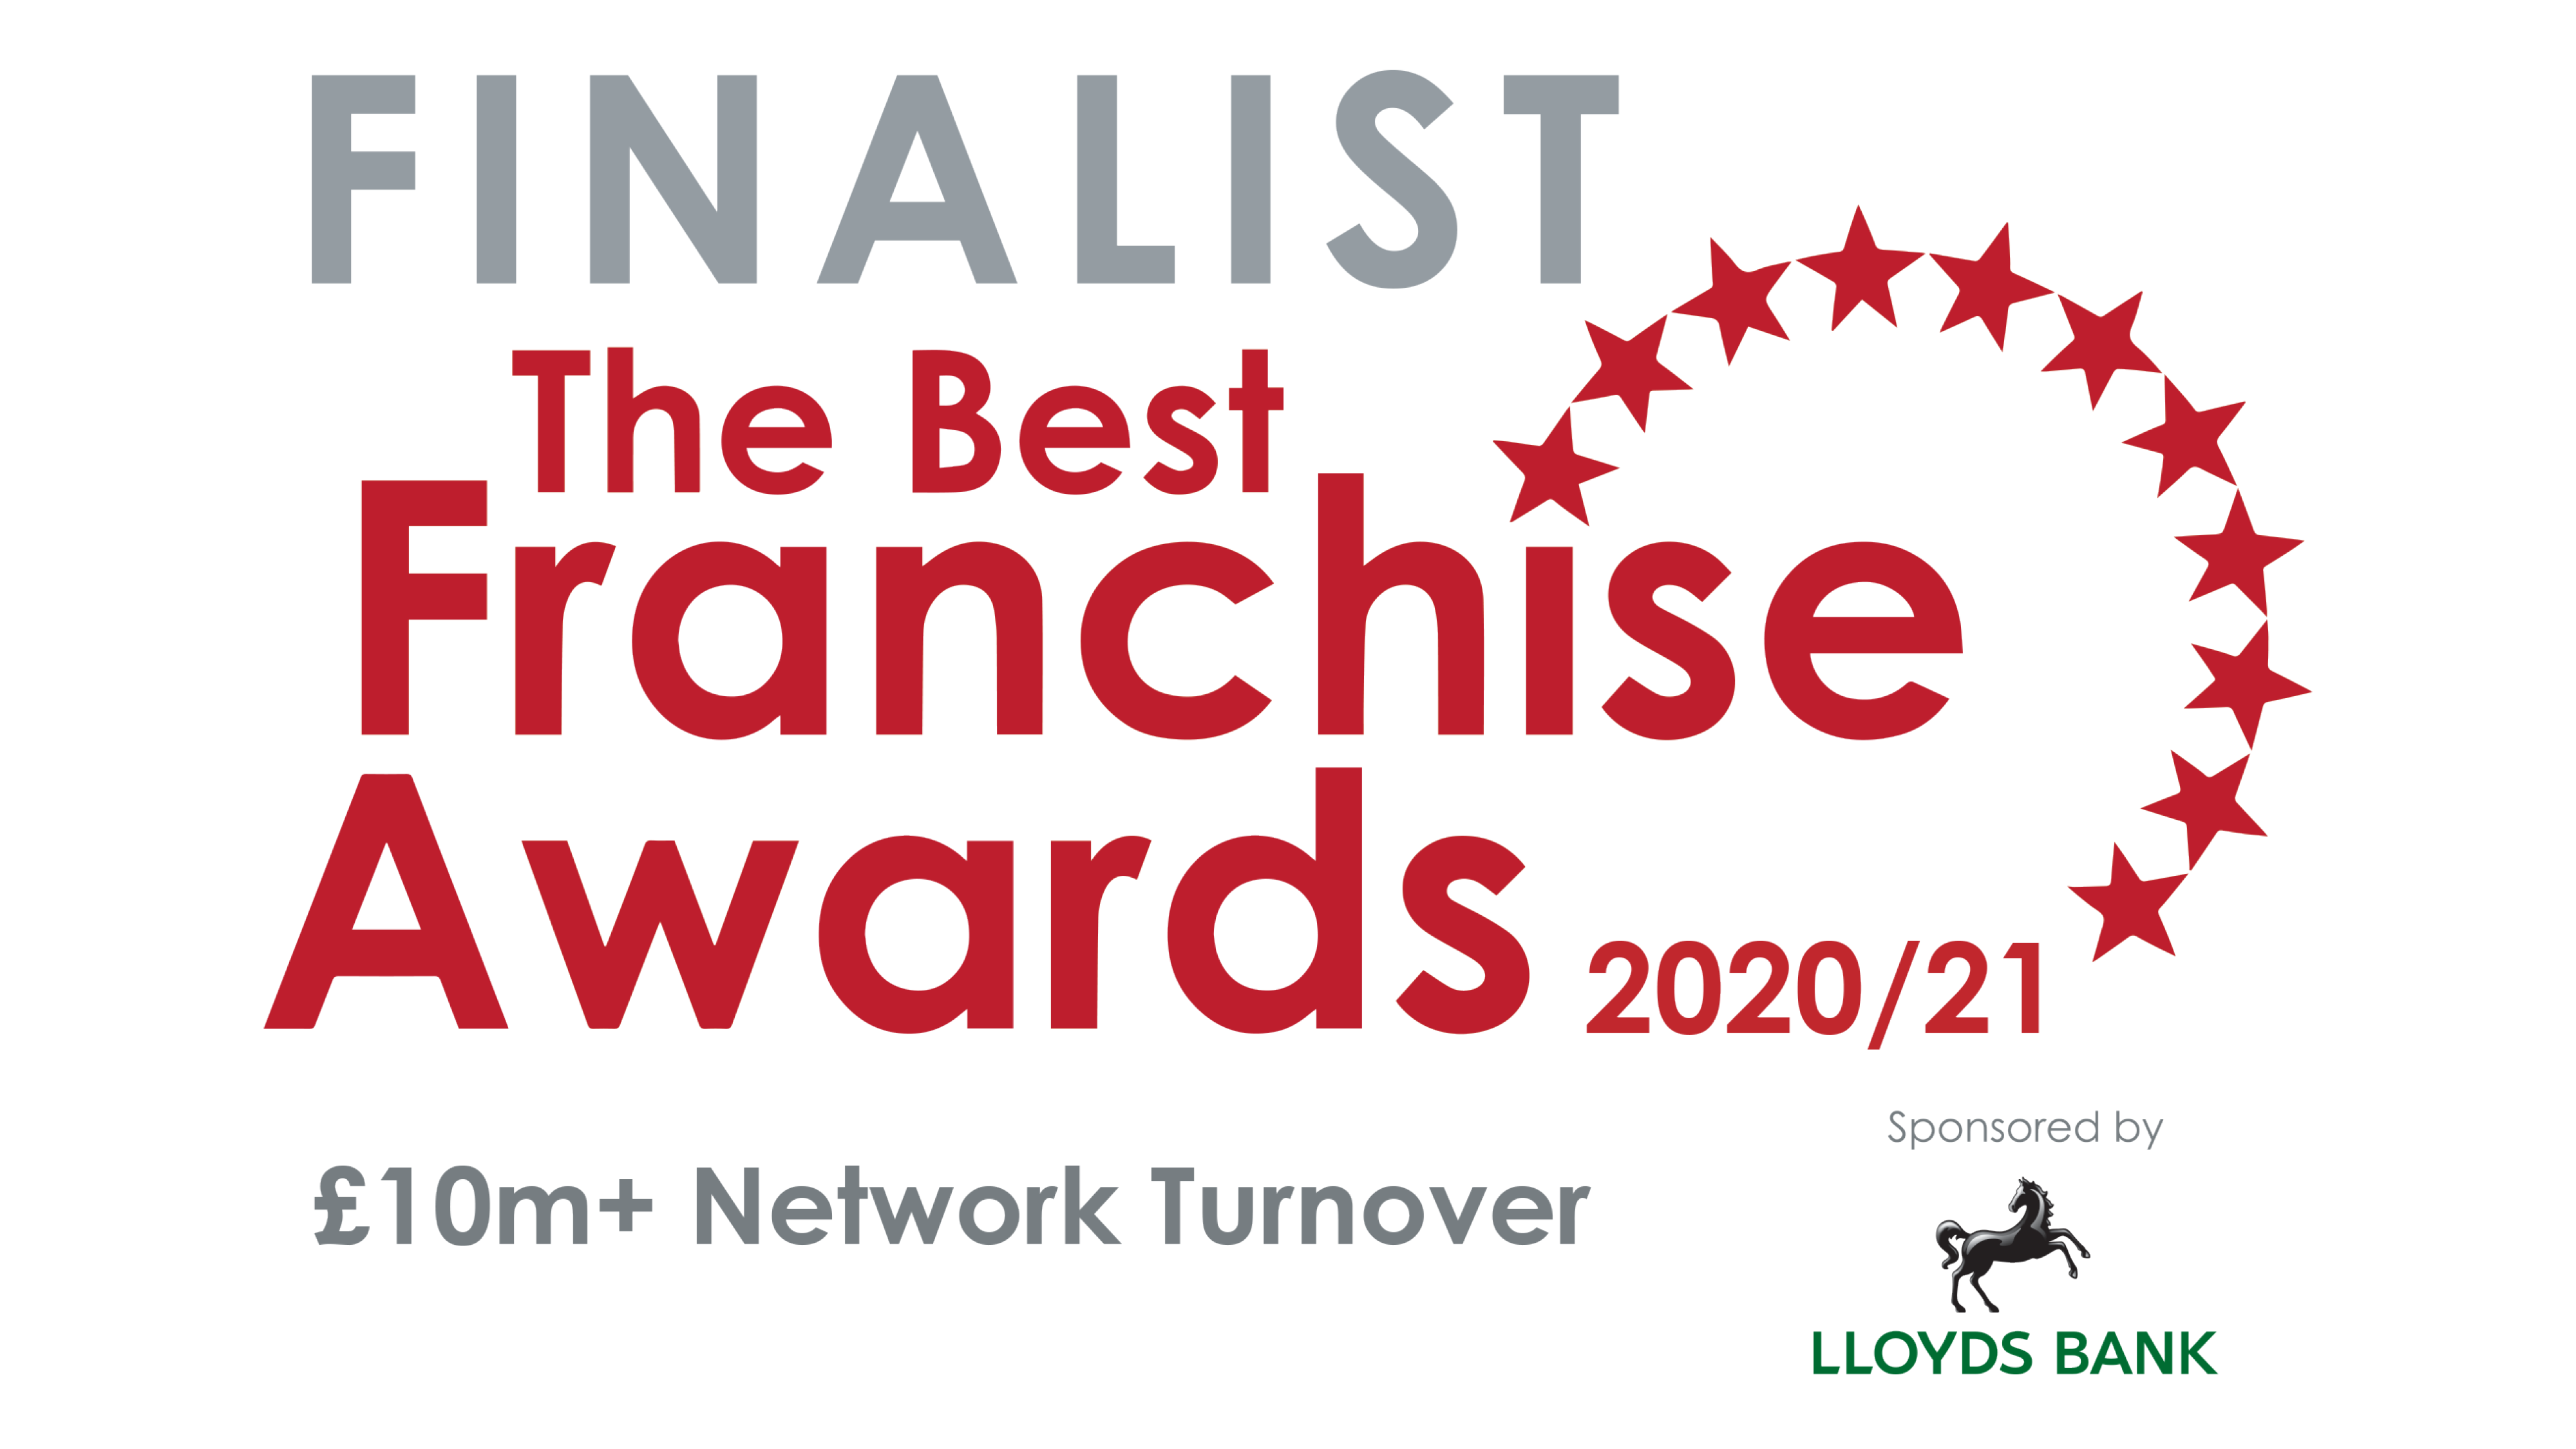 Right at Home is proud to be a finalist in the 2020/21 Best Franchise Awards, sponsored by Lloyds Bank.